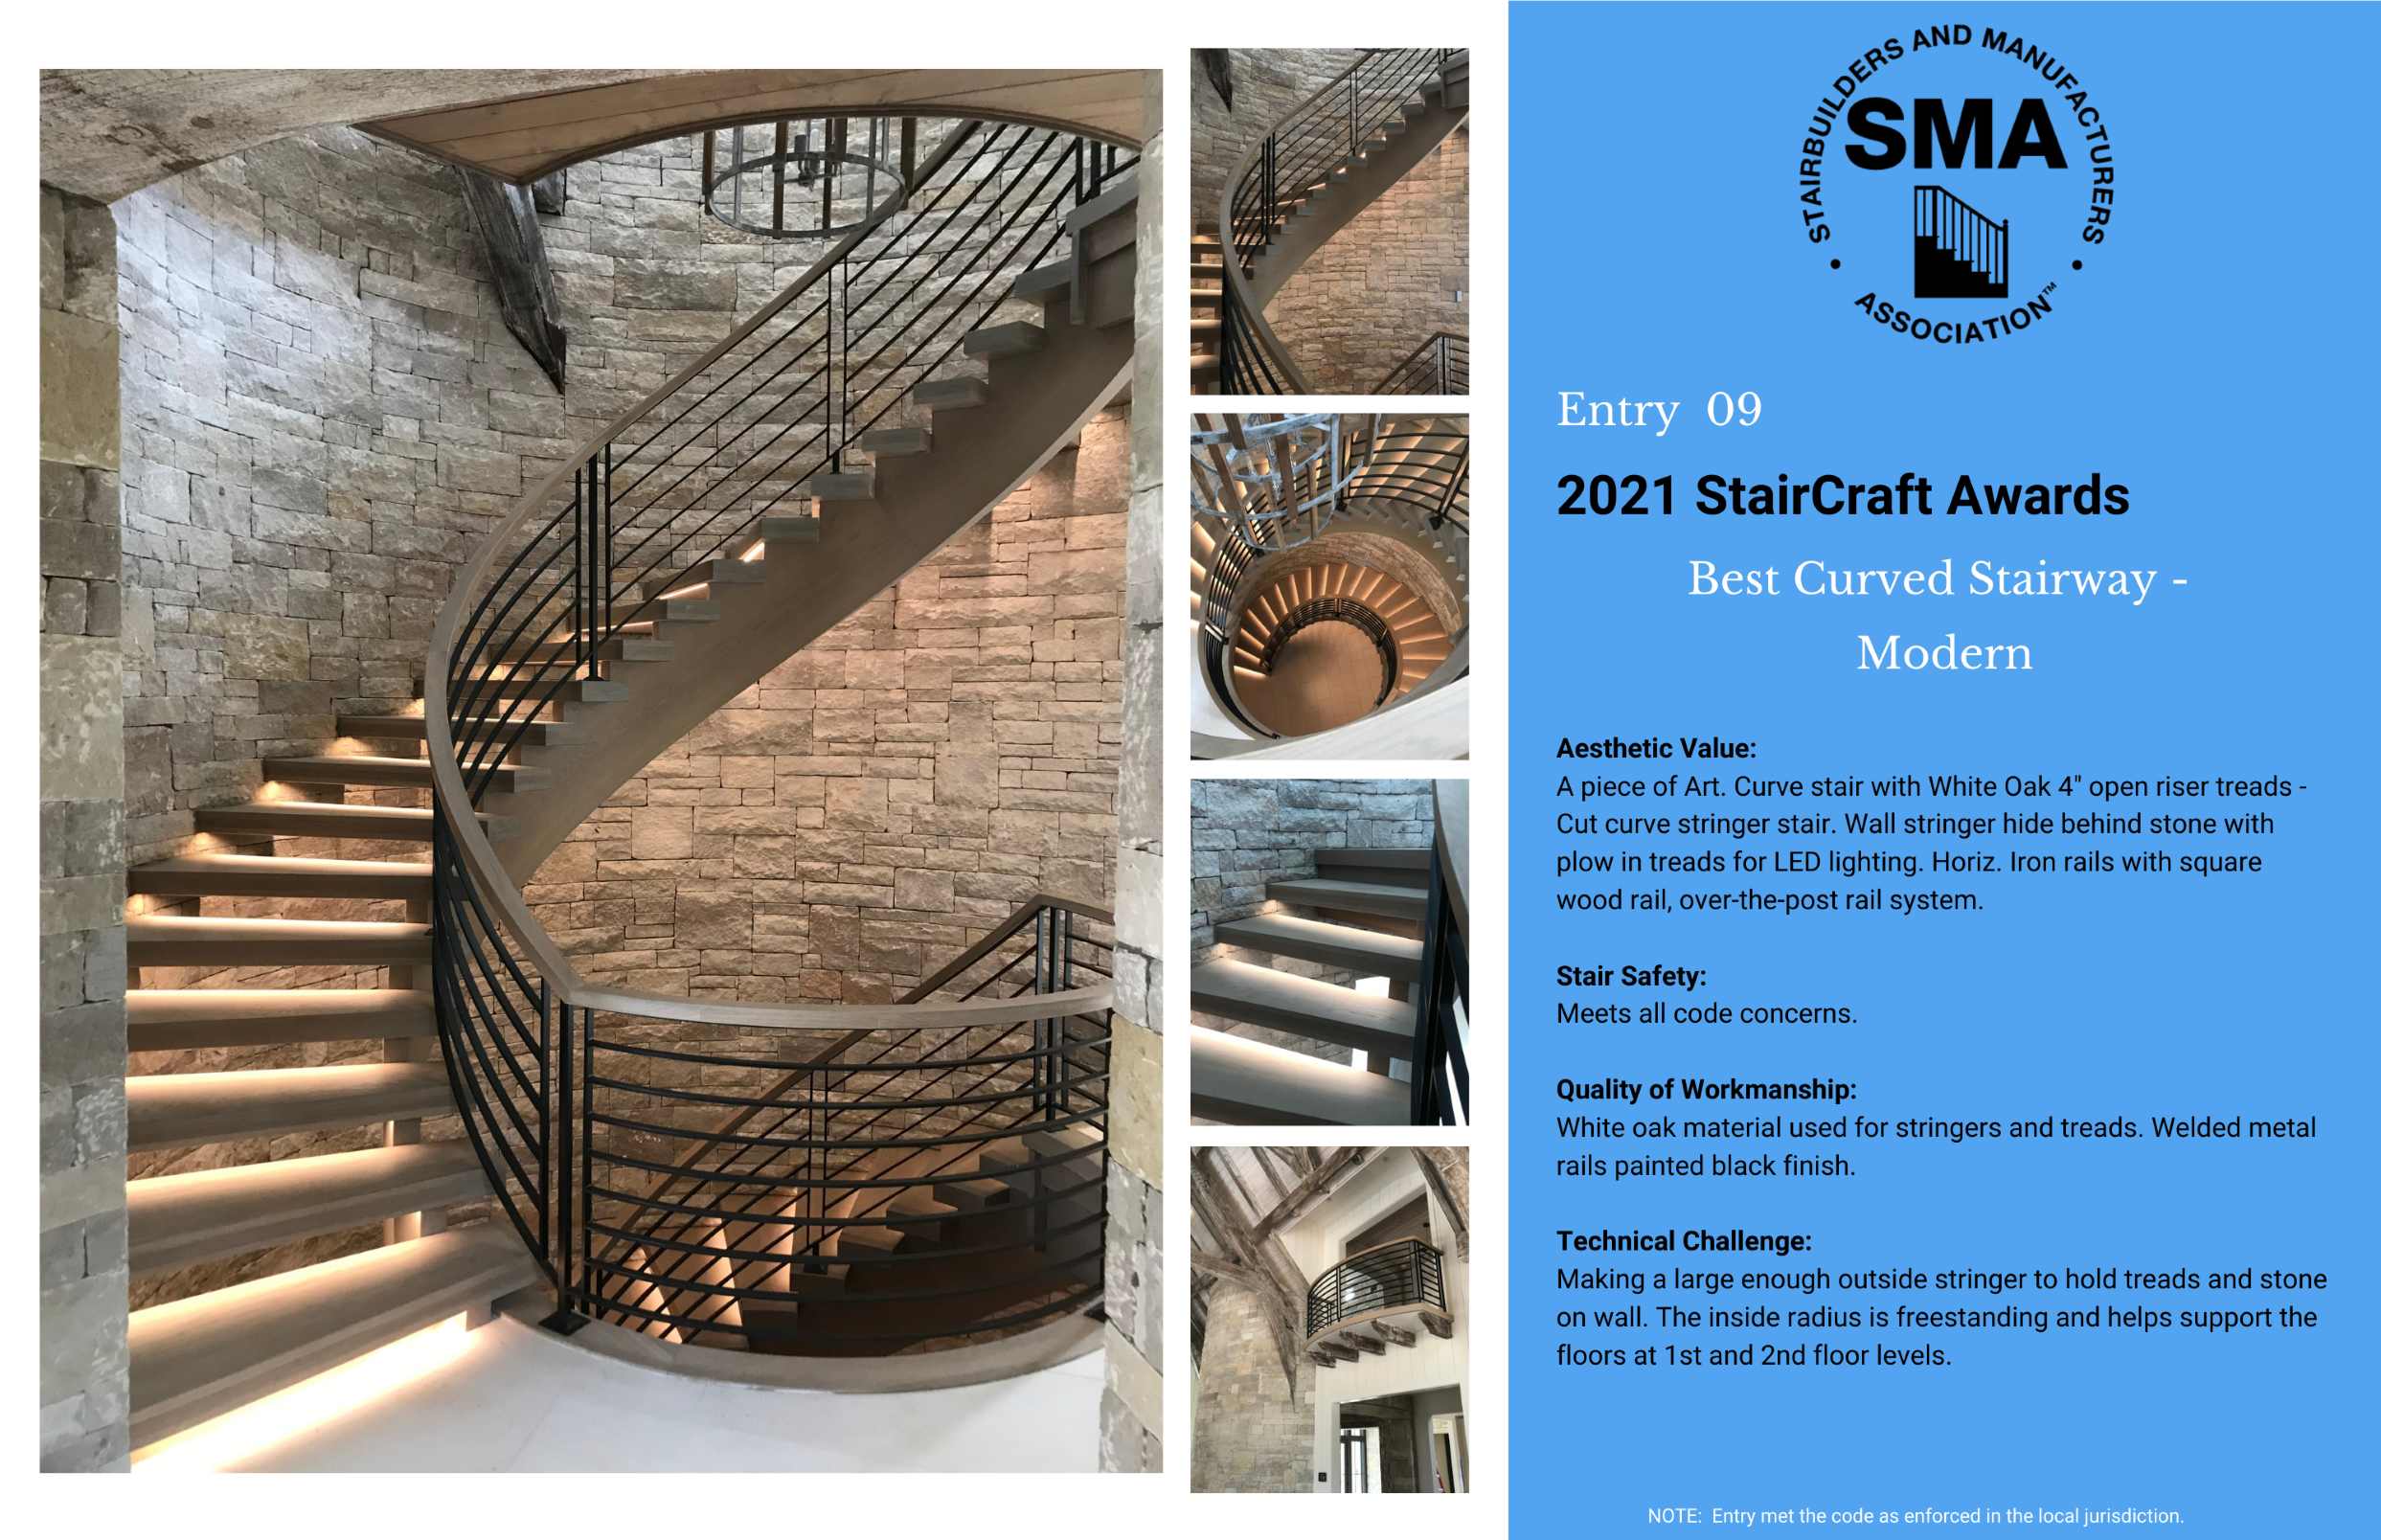 2021 StairCraft Awards Entry 9